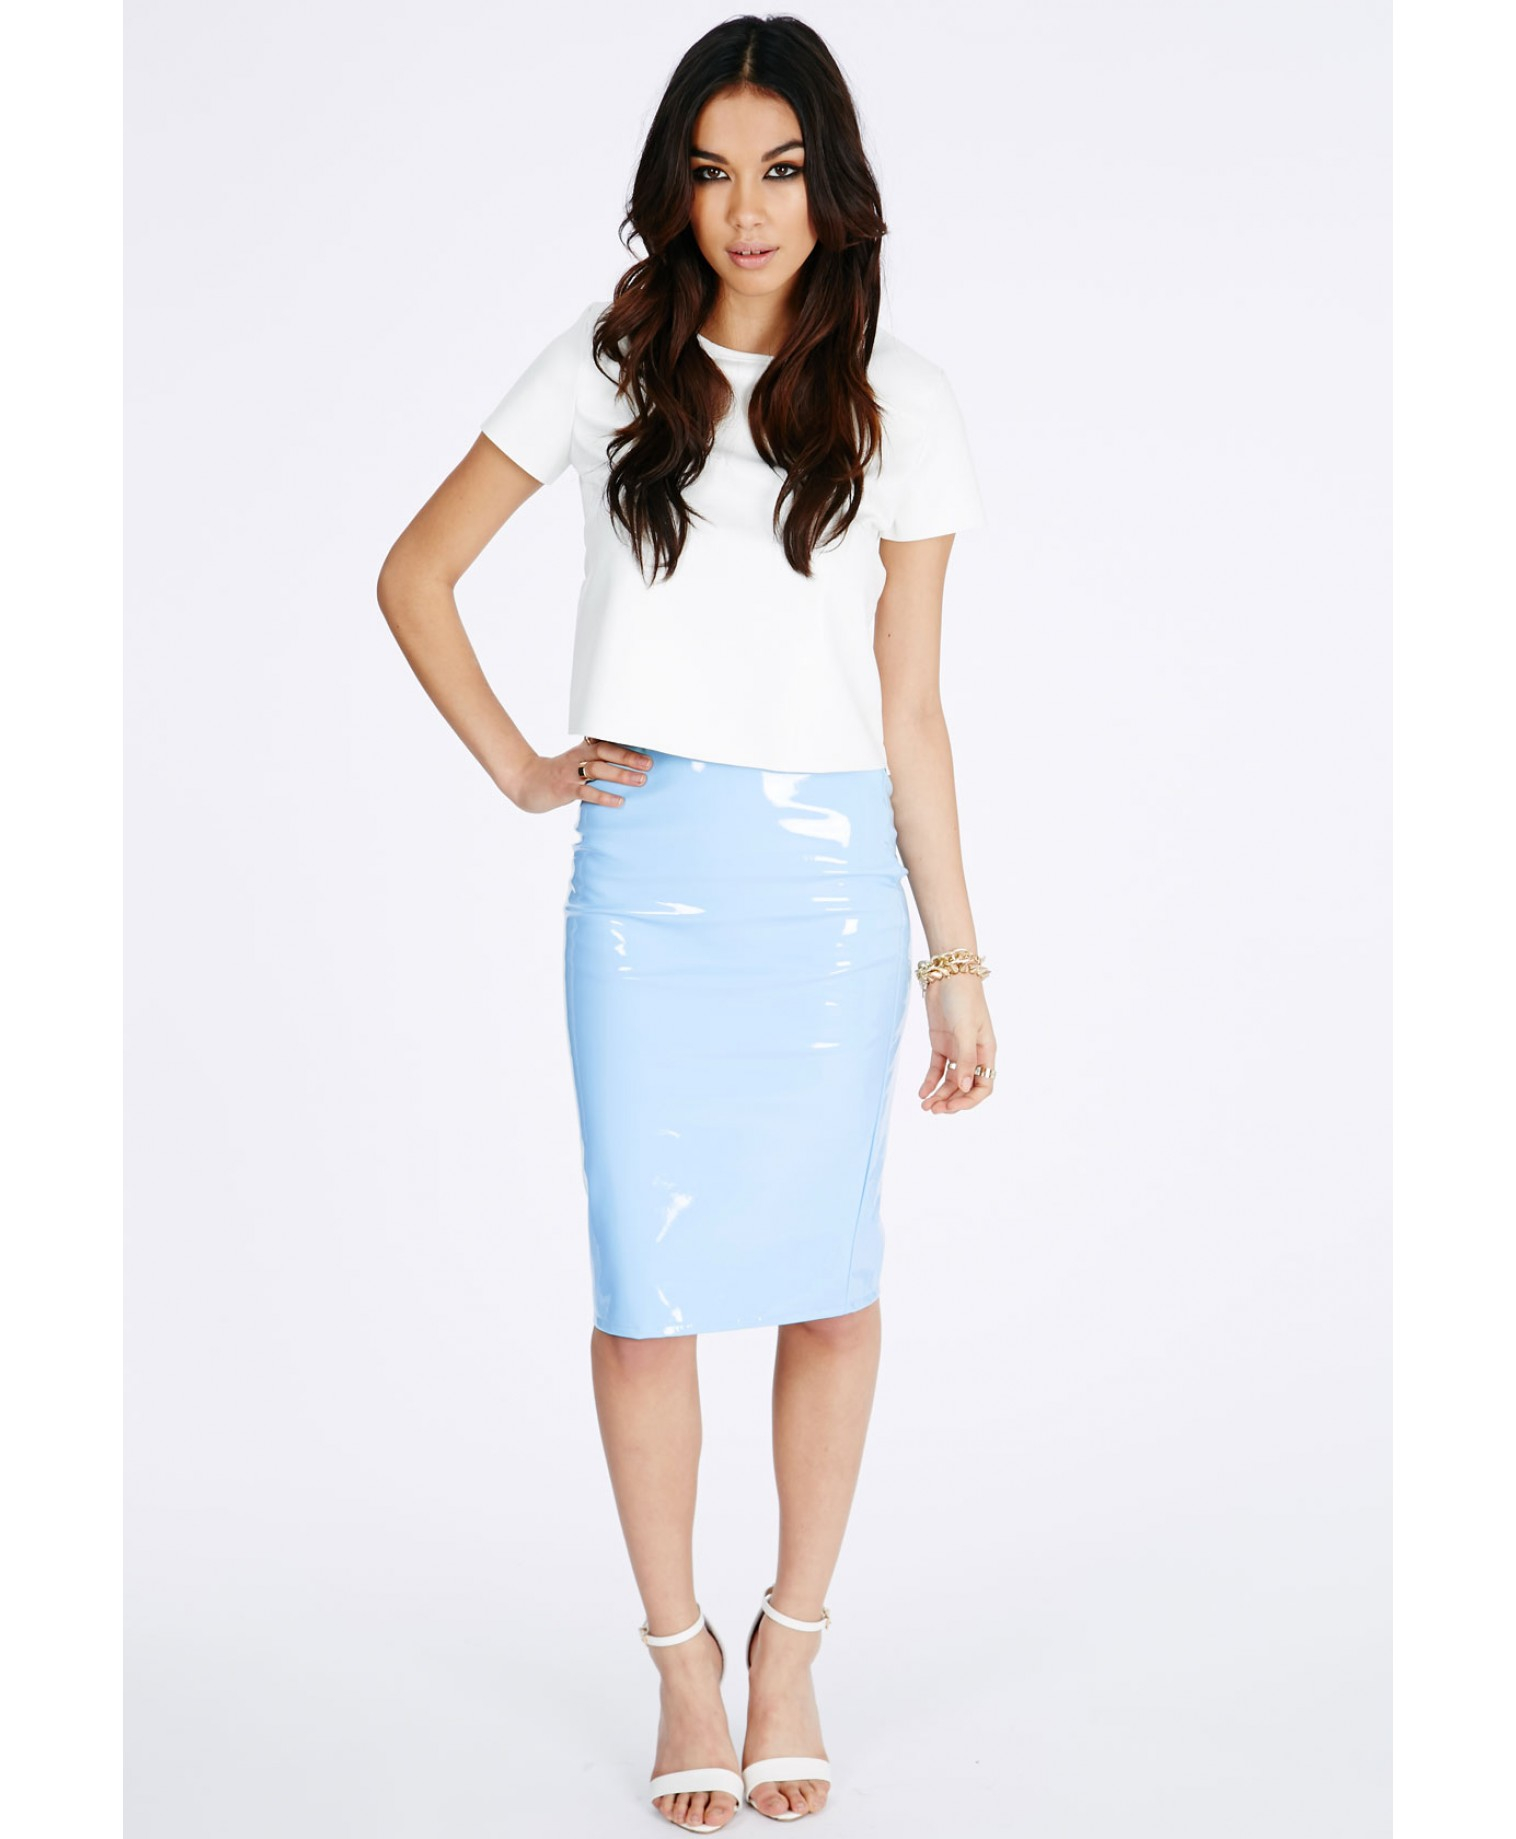 Missguided Mircia Pvc Midi Skirt In Baby Blue in Blue | Lyst